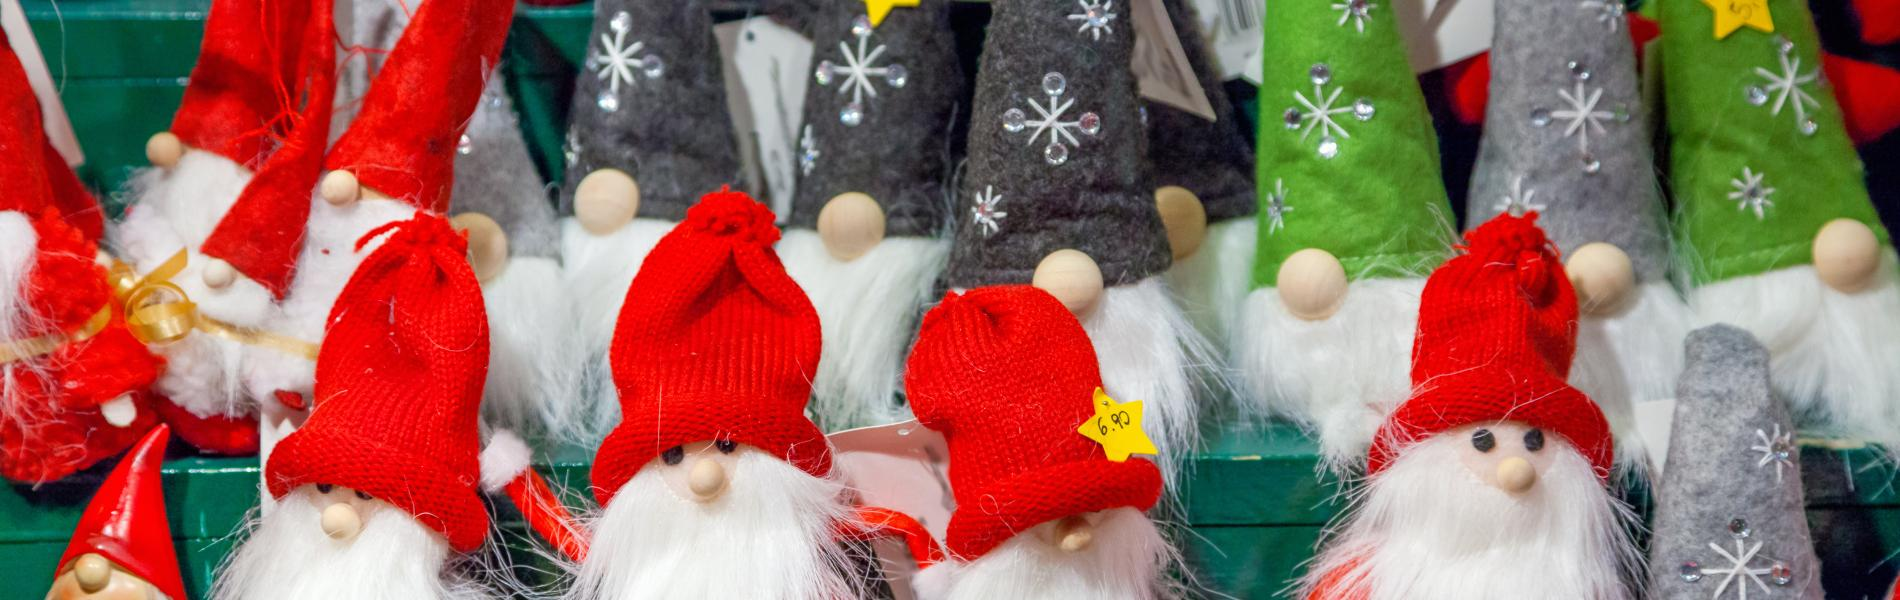 4 Marvelous Christmas Gifts for Toddlers